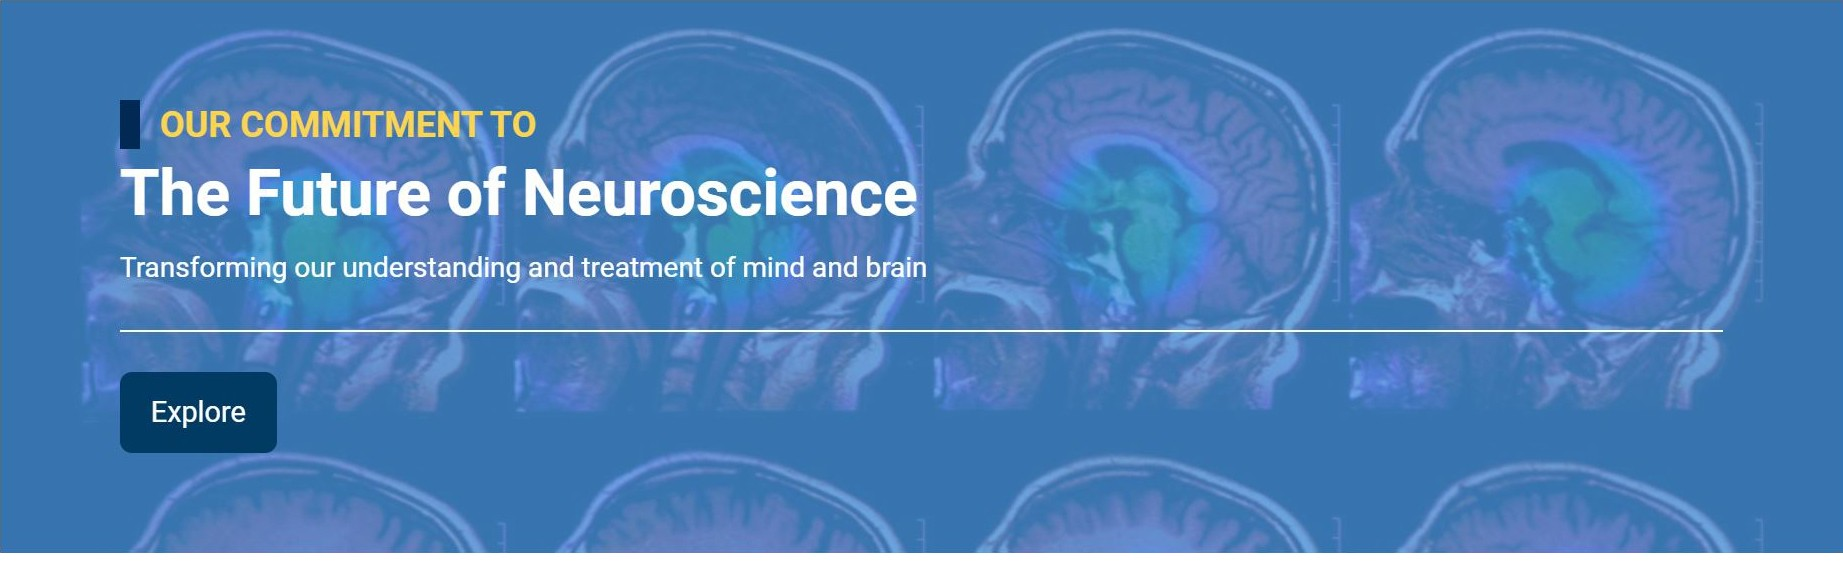 OUR COMMITMENT TO The Future of Neuroscience Transforming our understanding and treatment of mind and brain